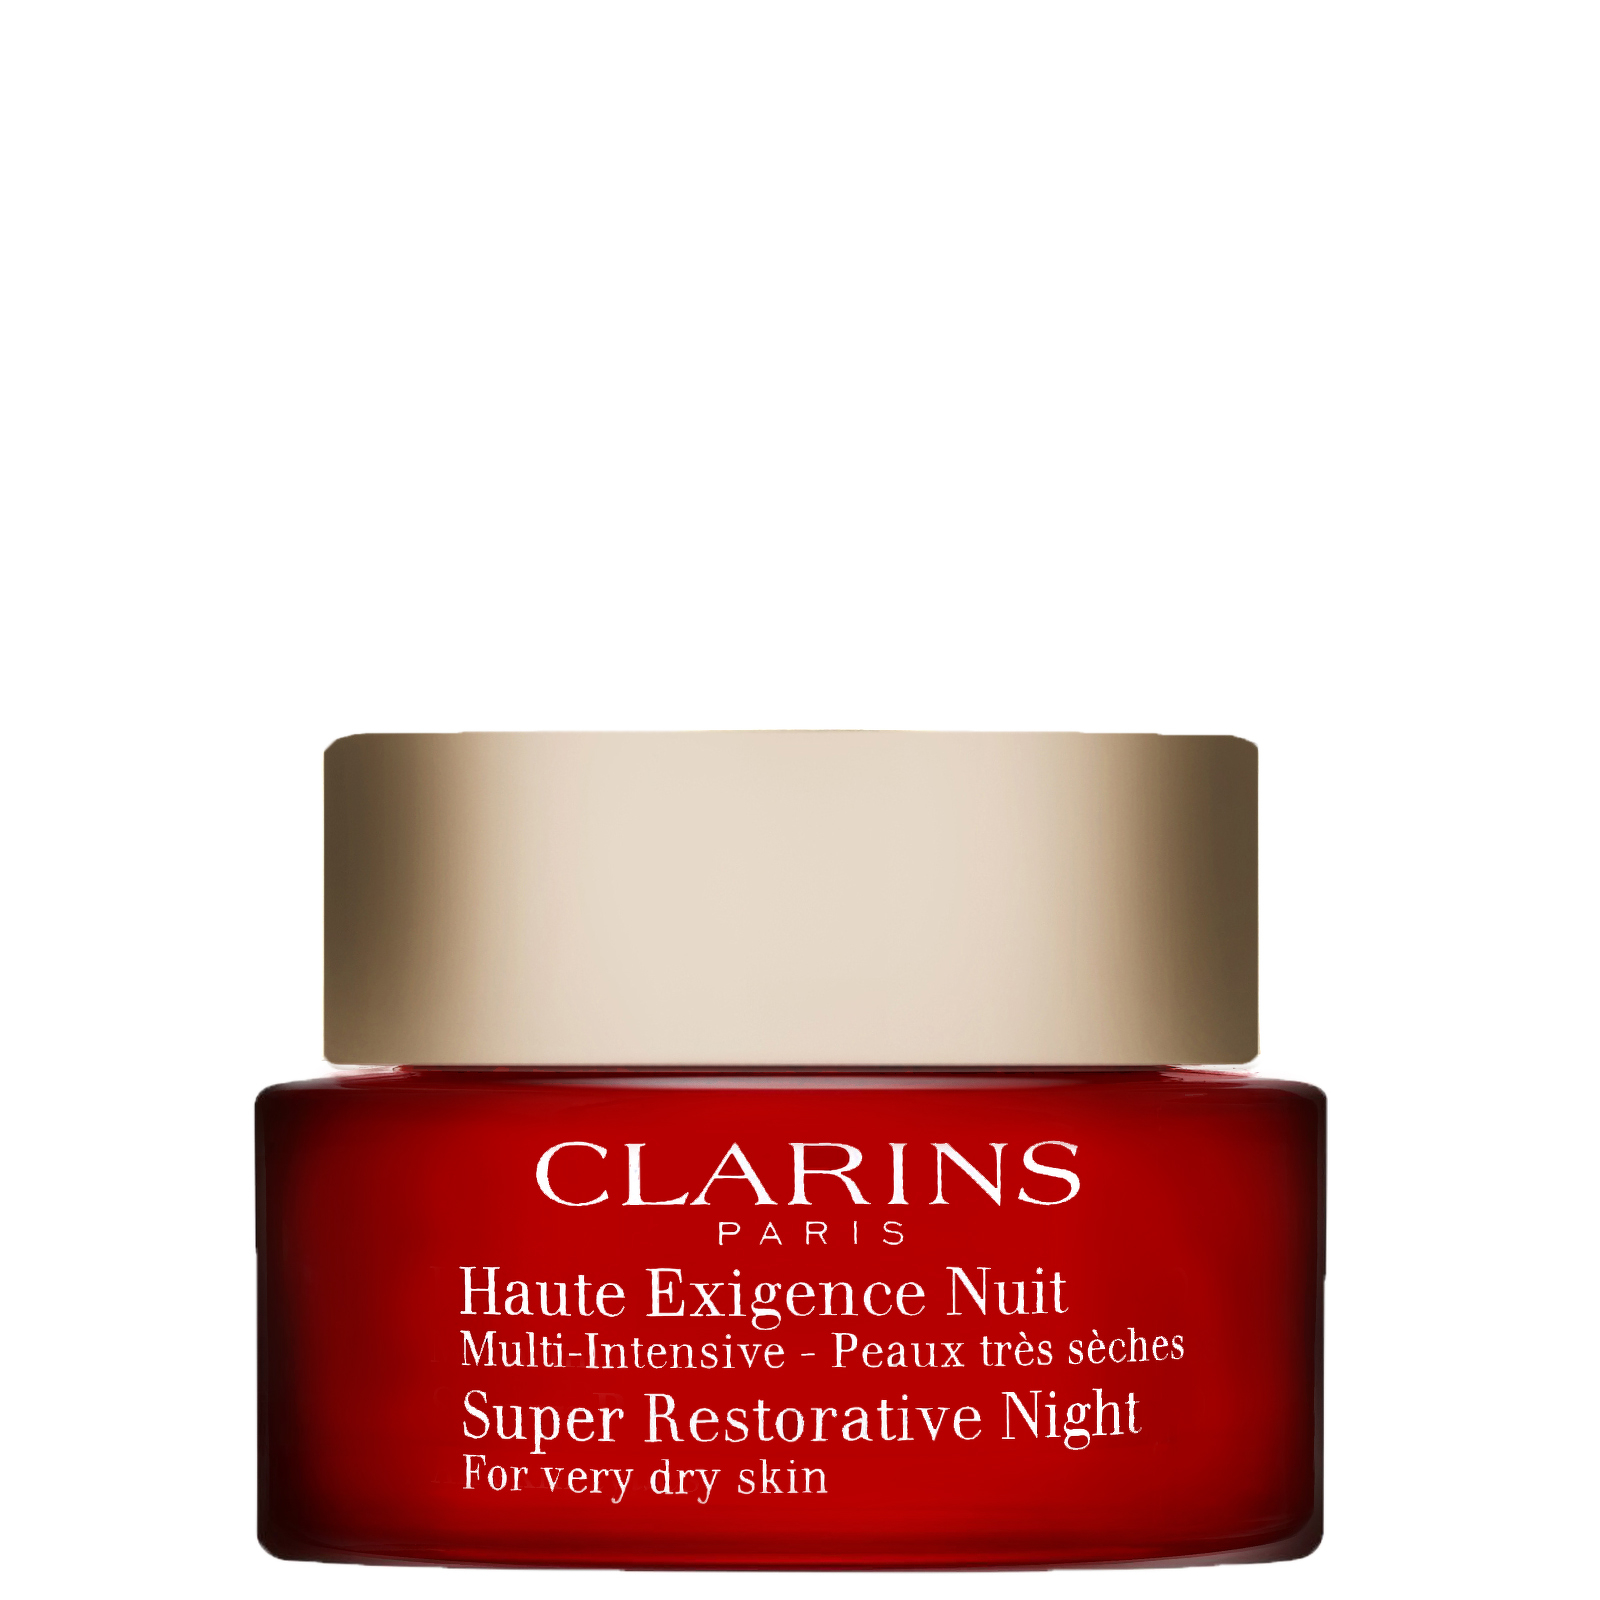 Clarins Super Restorative Night Age Cream For Very Dry Skin 50ml / 1.6 oz.